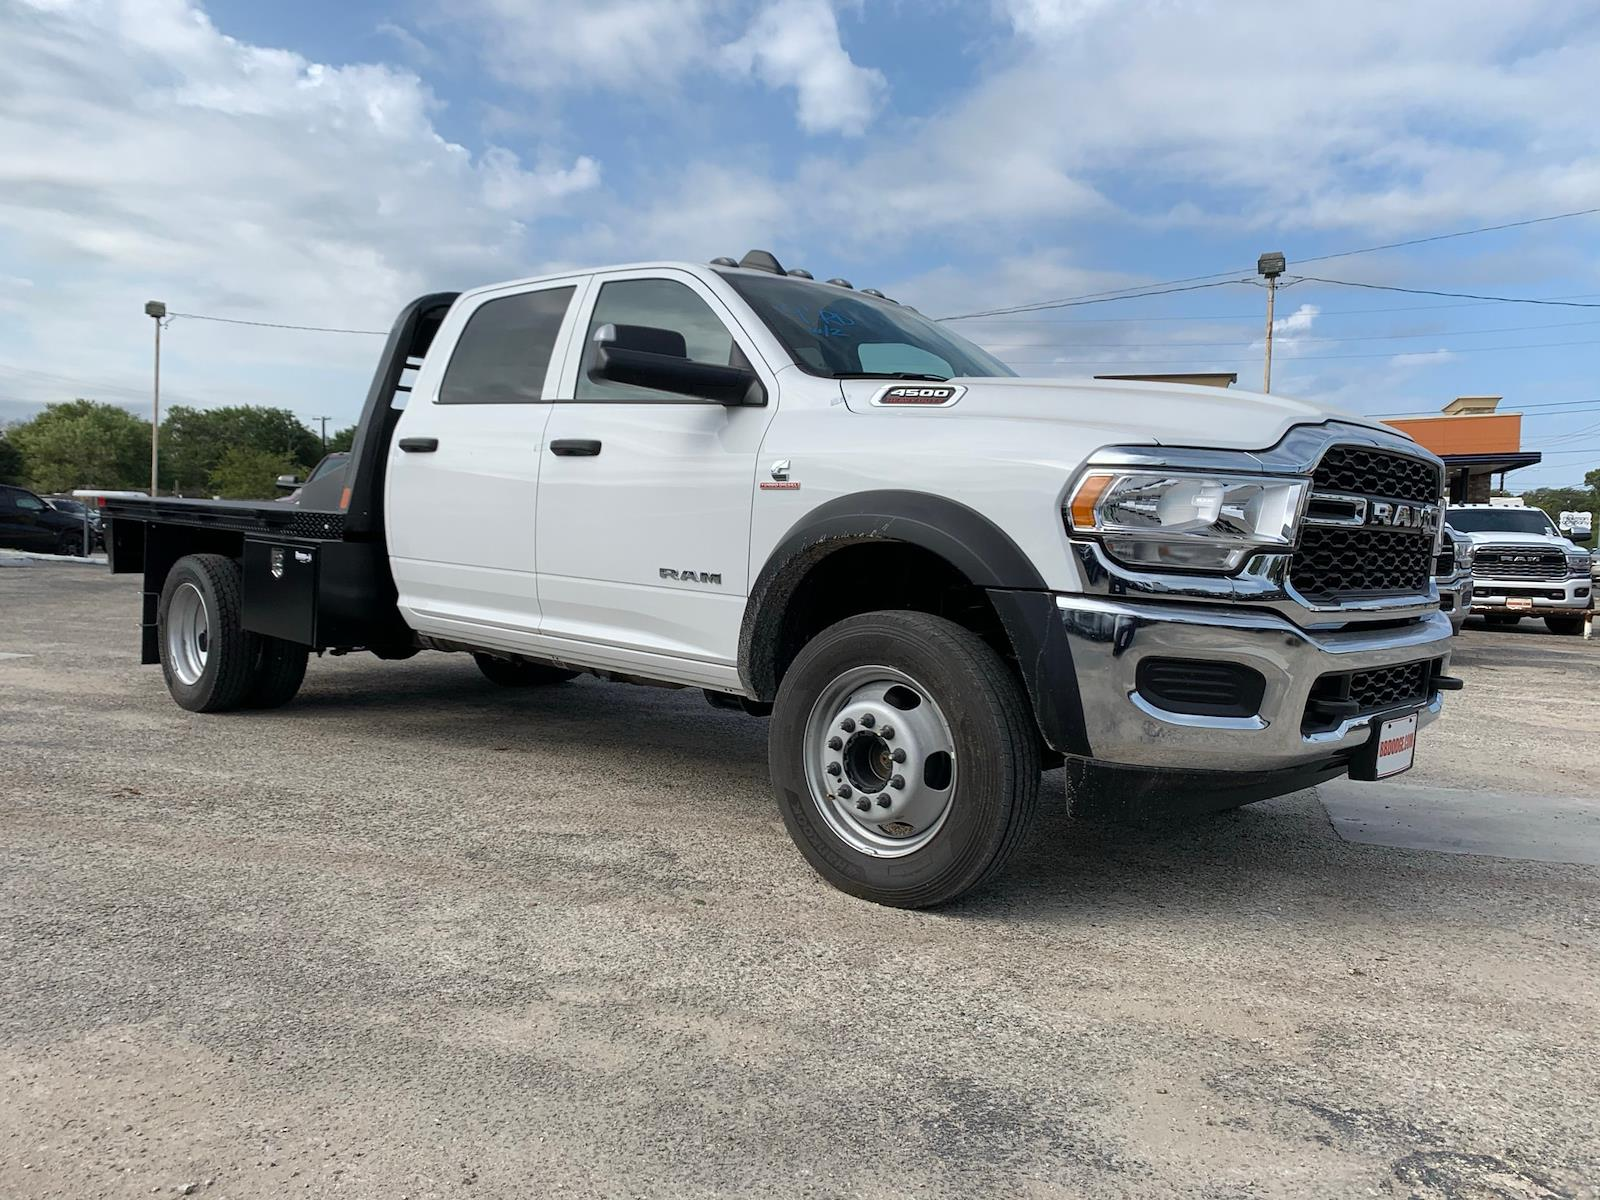 New 2020 Ram 4500 Flatbed For Sale In New Braunfels Tx Tg223462